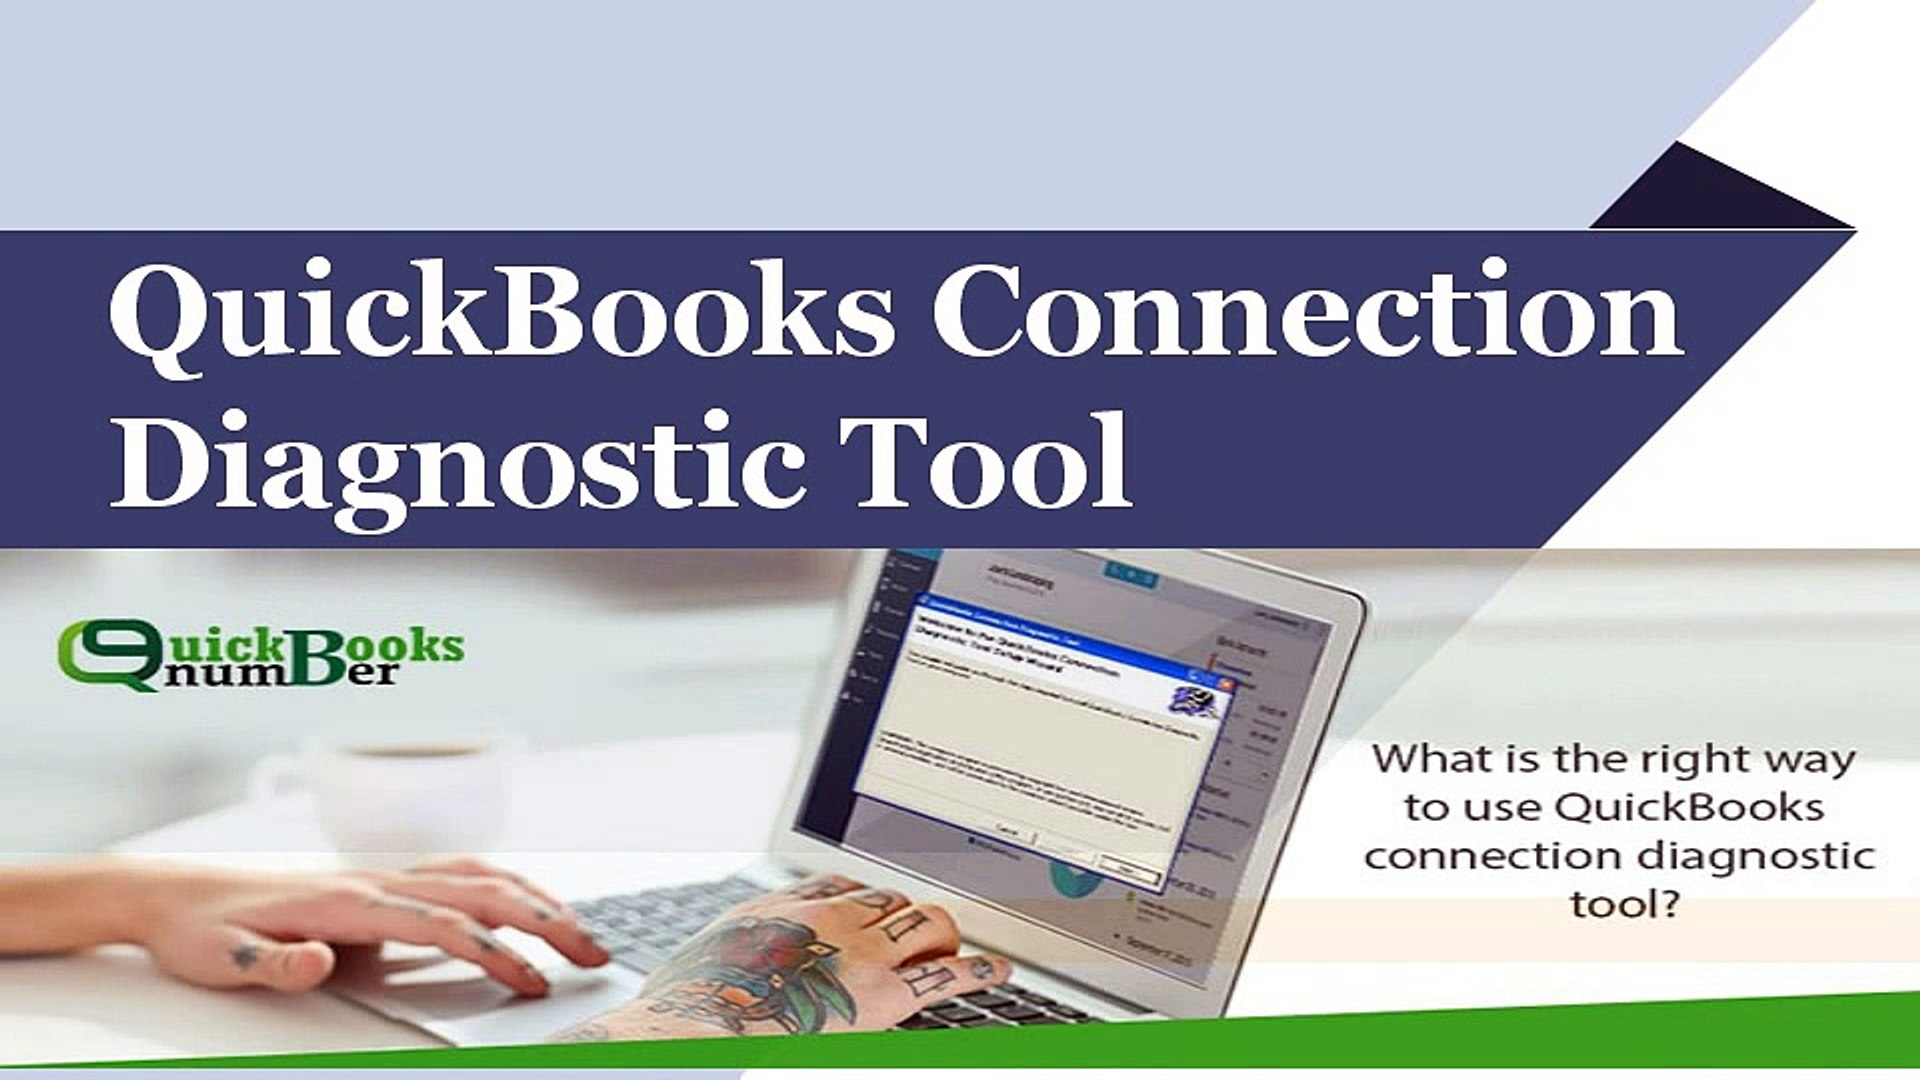 Quickbooks Connection Diagnostic Tool : Download, Install and Usage